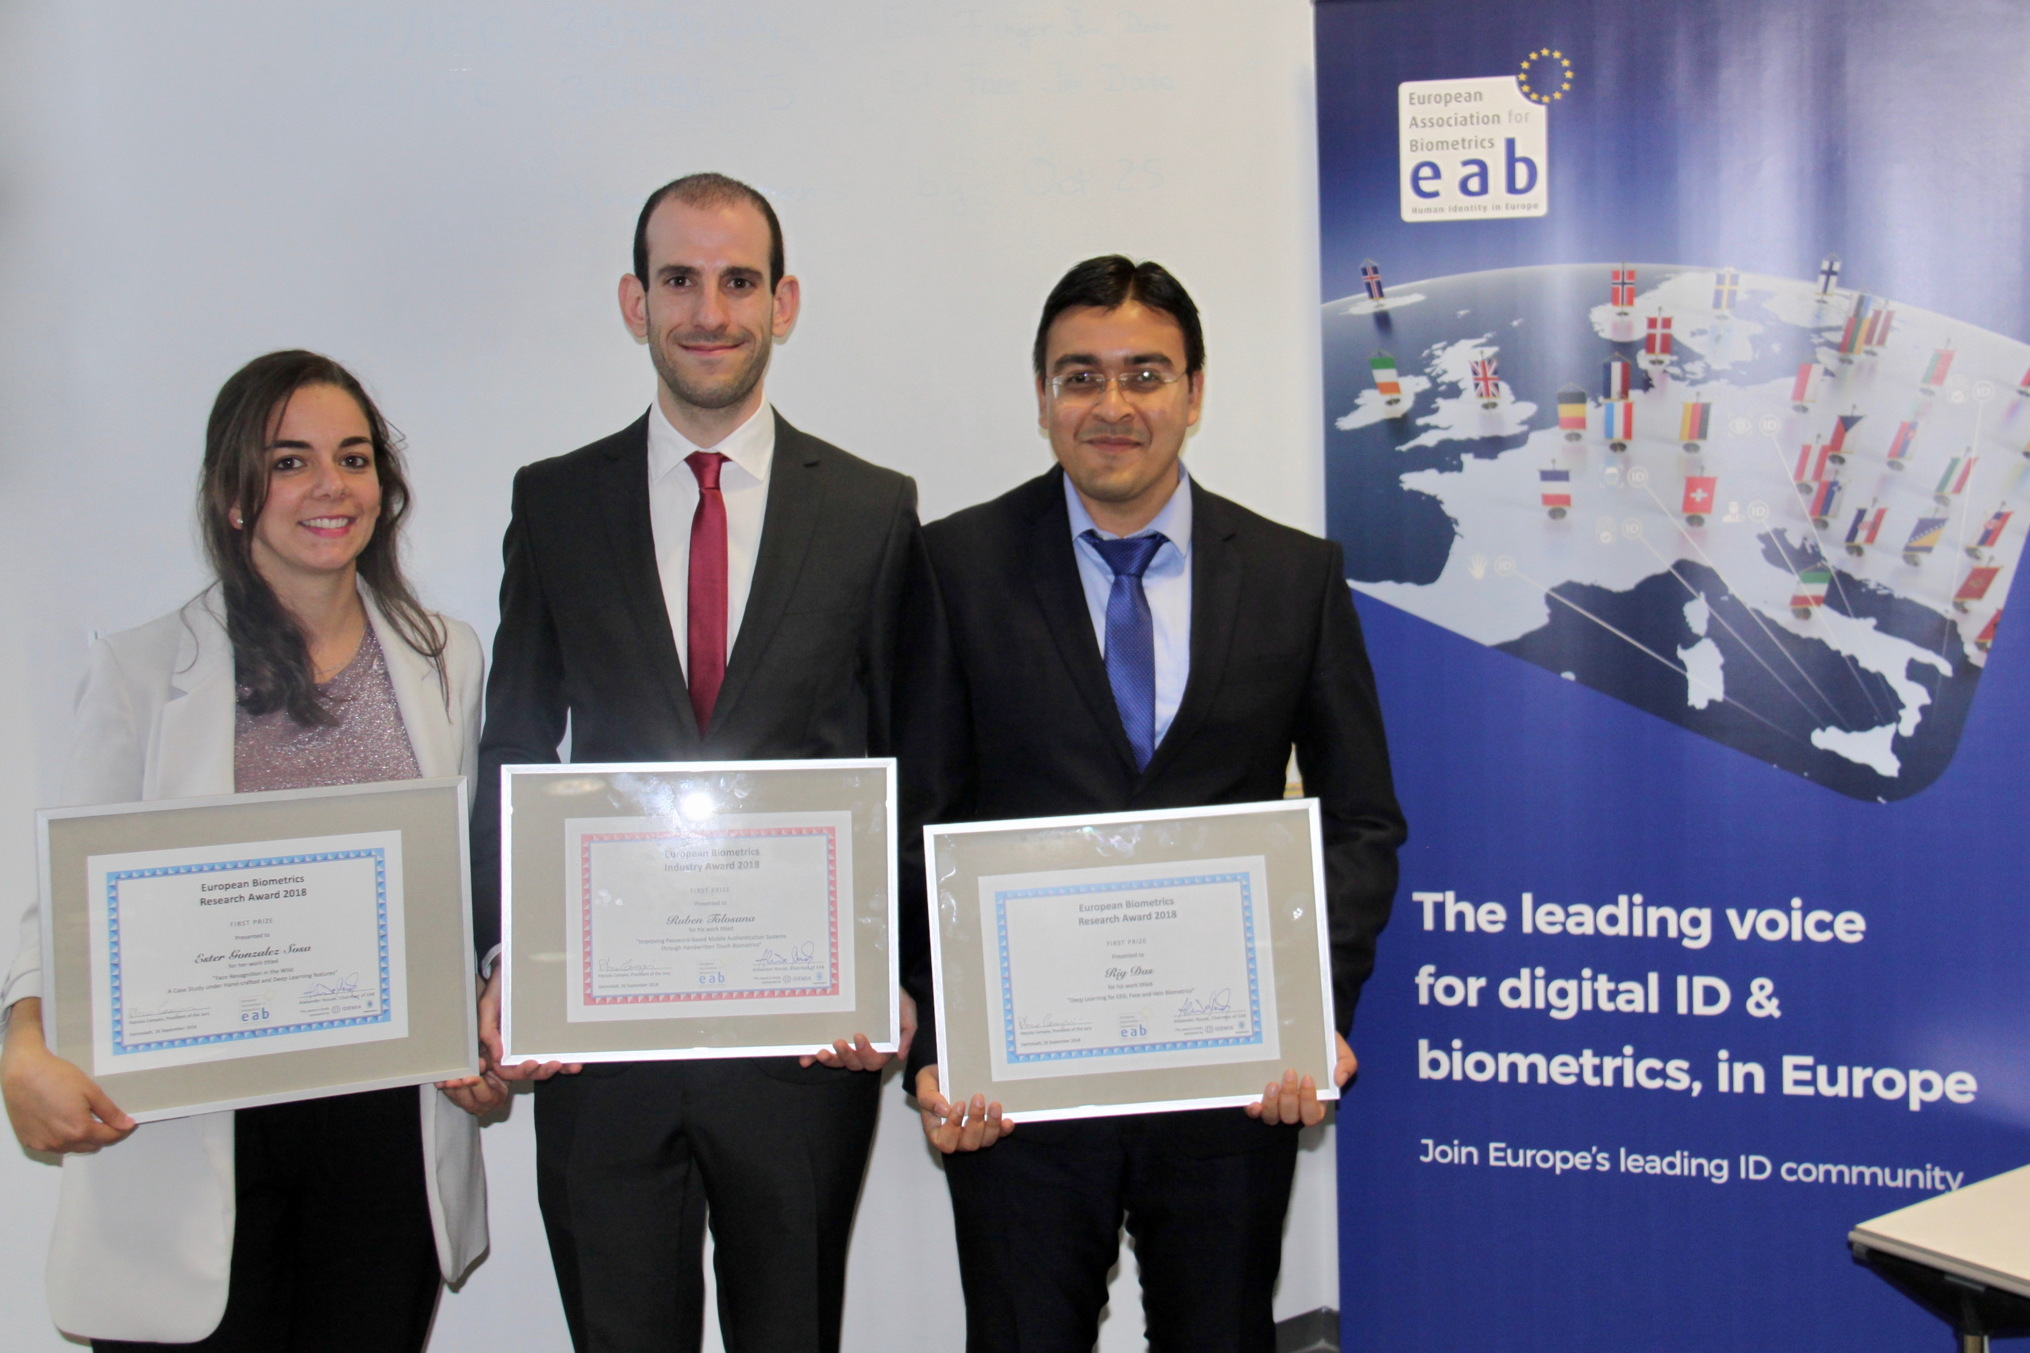 [Photo] The winners of the European BViometrics Research and Industry Awards 2018: Ester Gonzalez Sosa, Ruben Tolosana and Rig Das